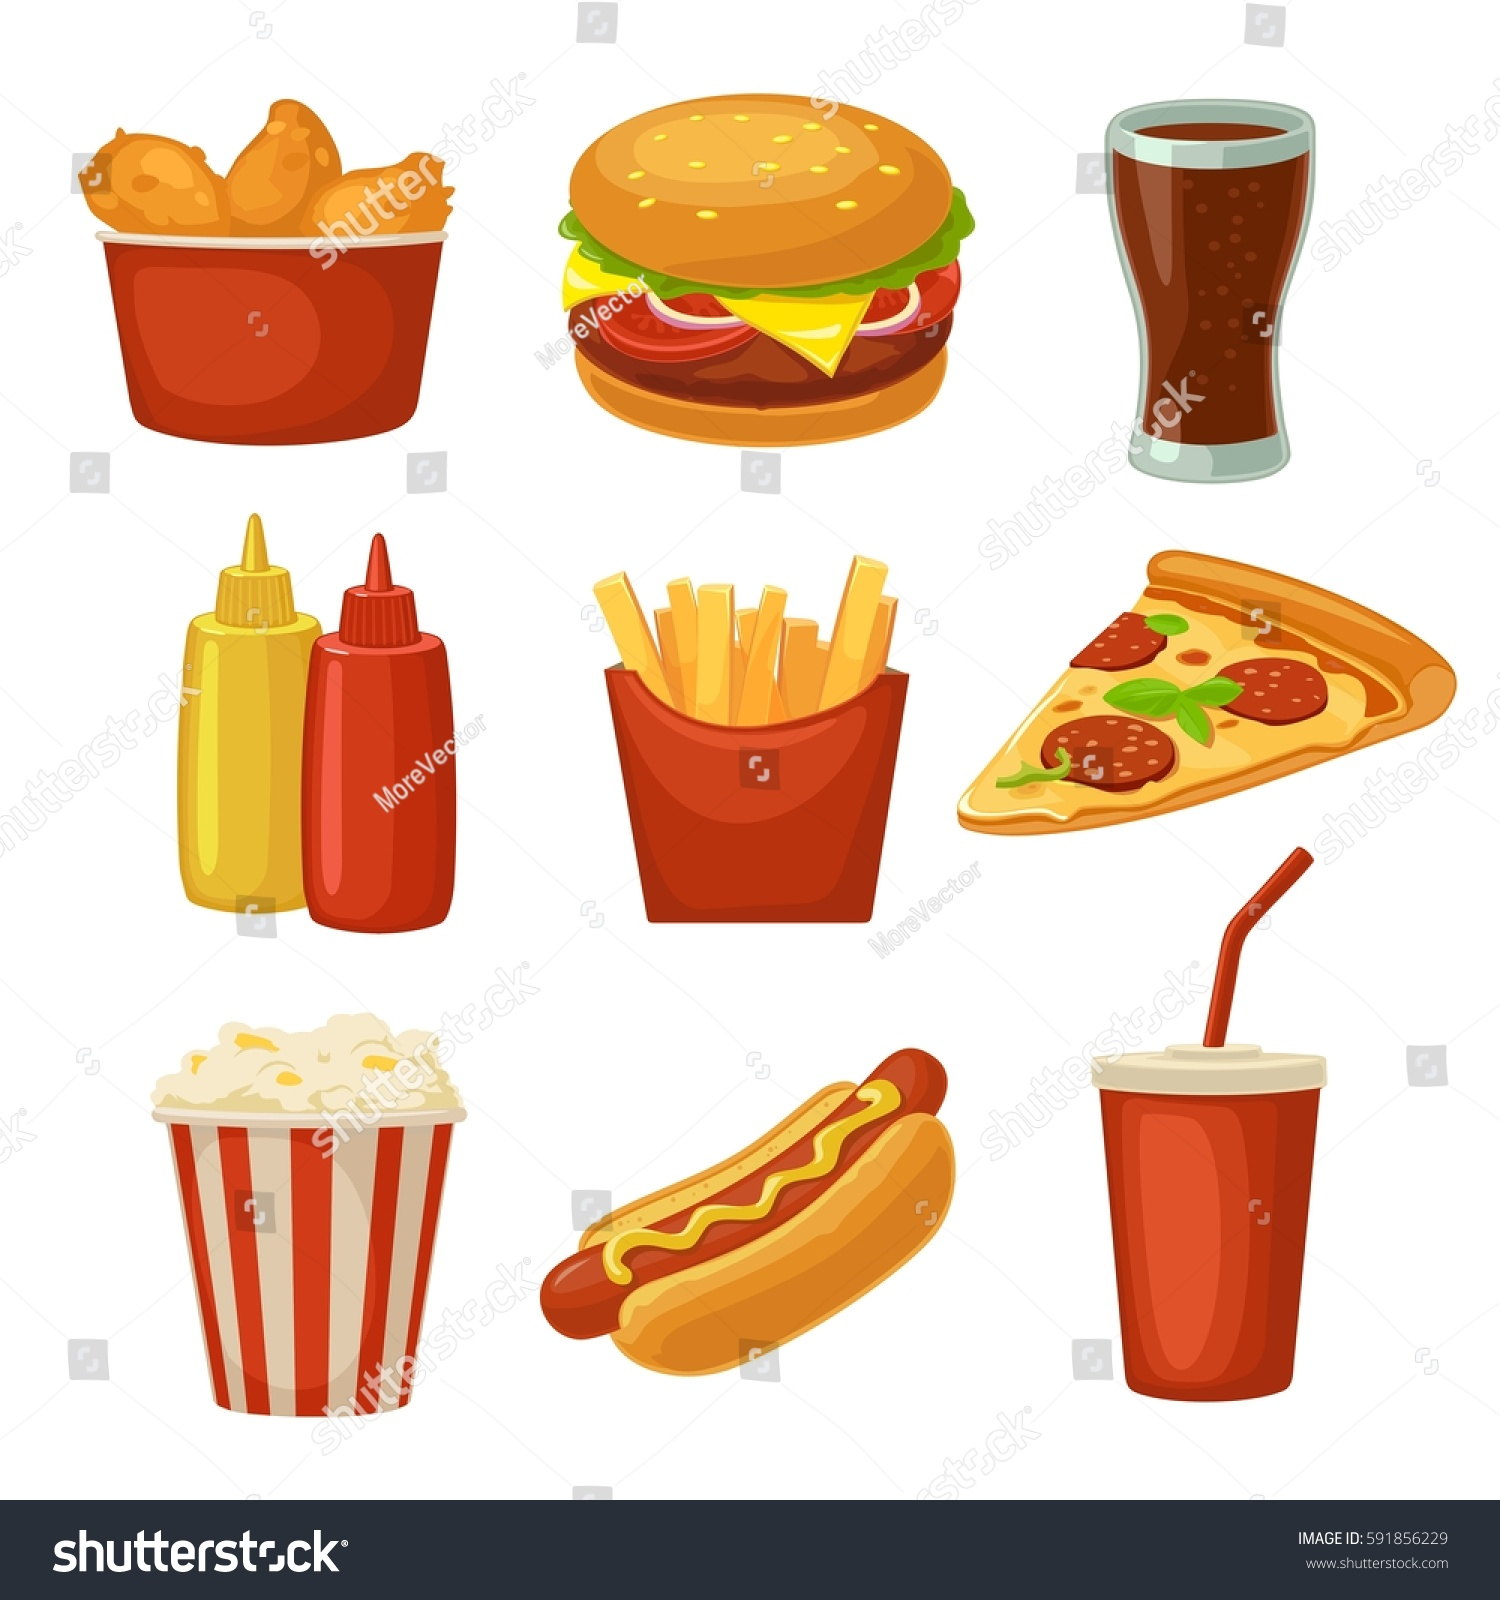 Set Fast Food Icon Cup Cola Stock Vector 591856229 - Shutterstock